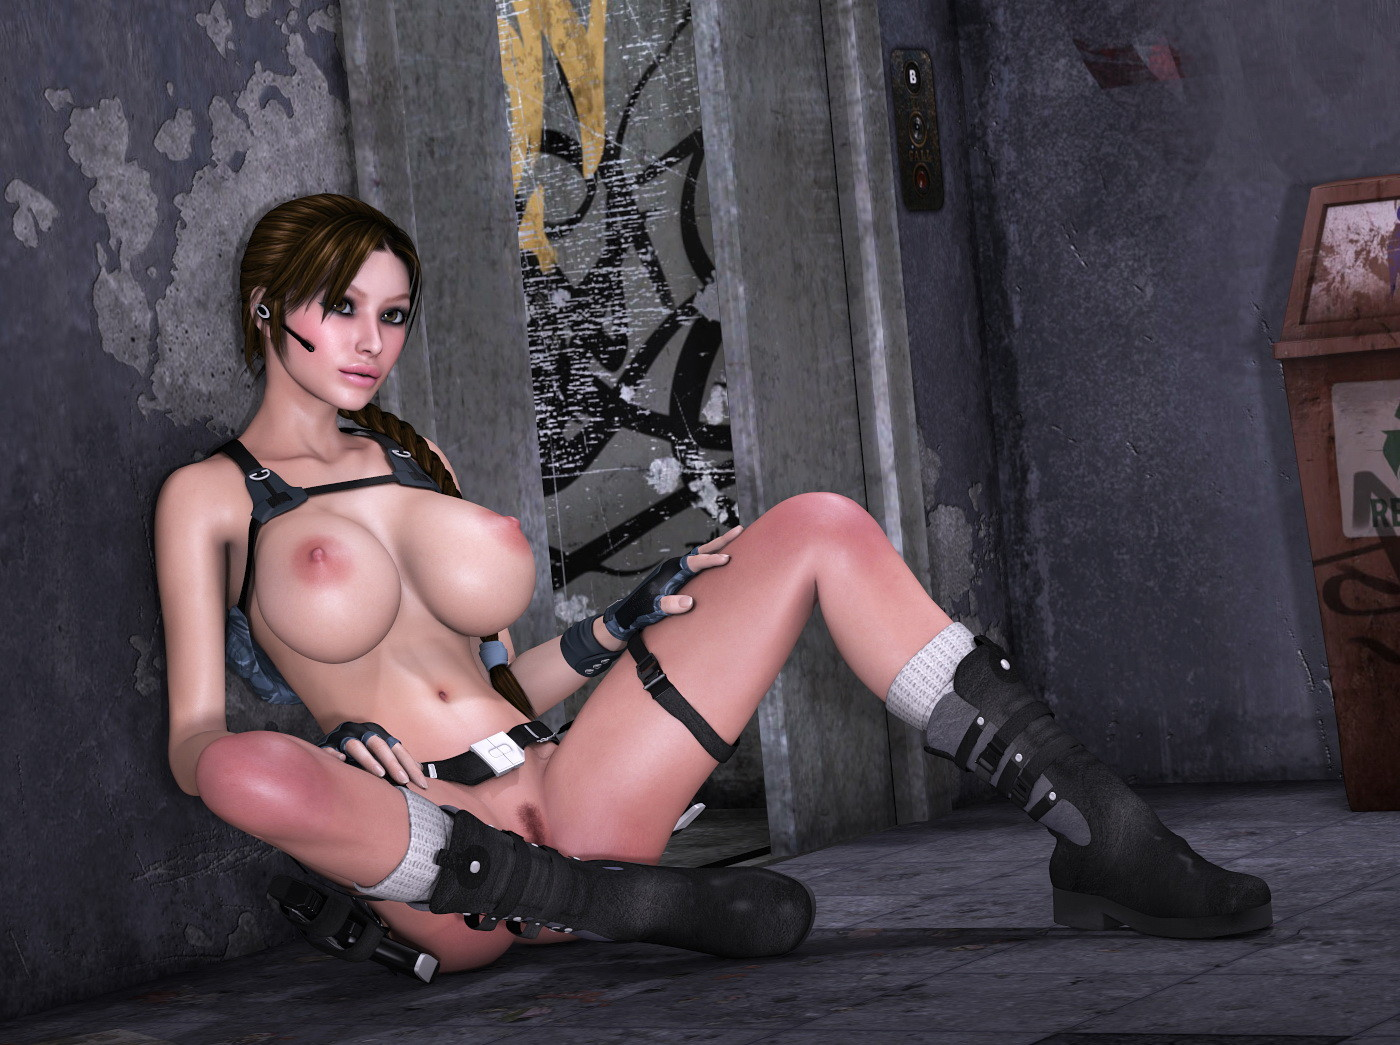 Free lara croft porn gallery cartoon picture